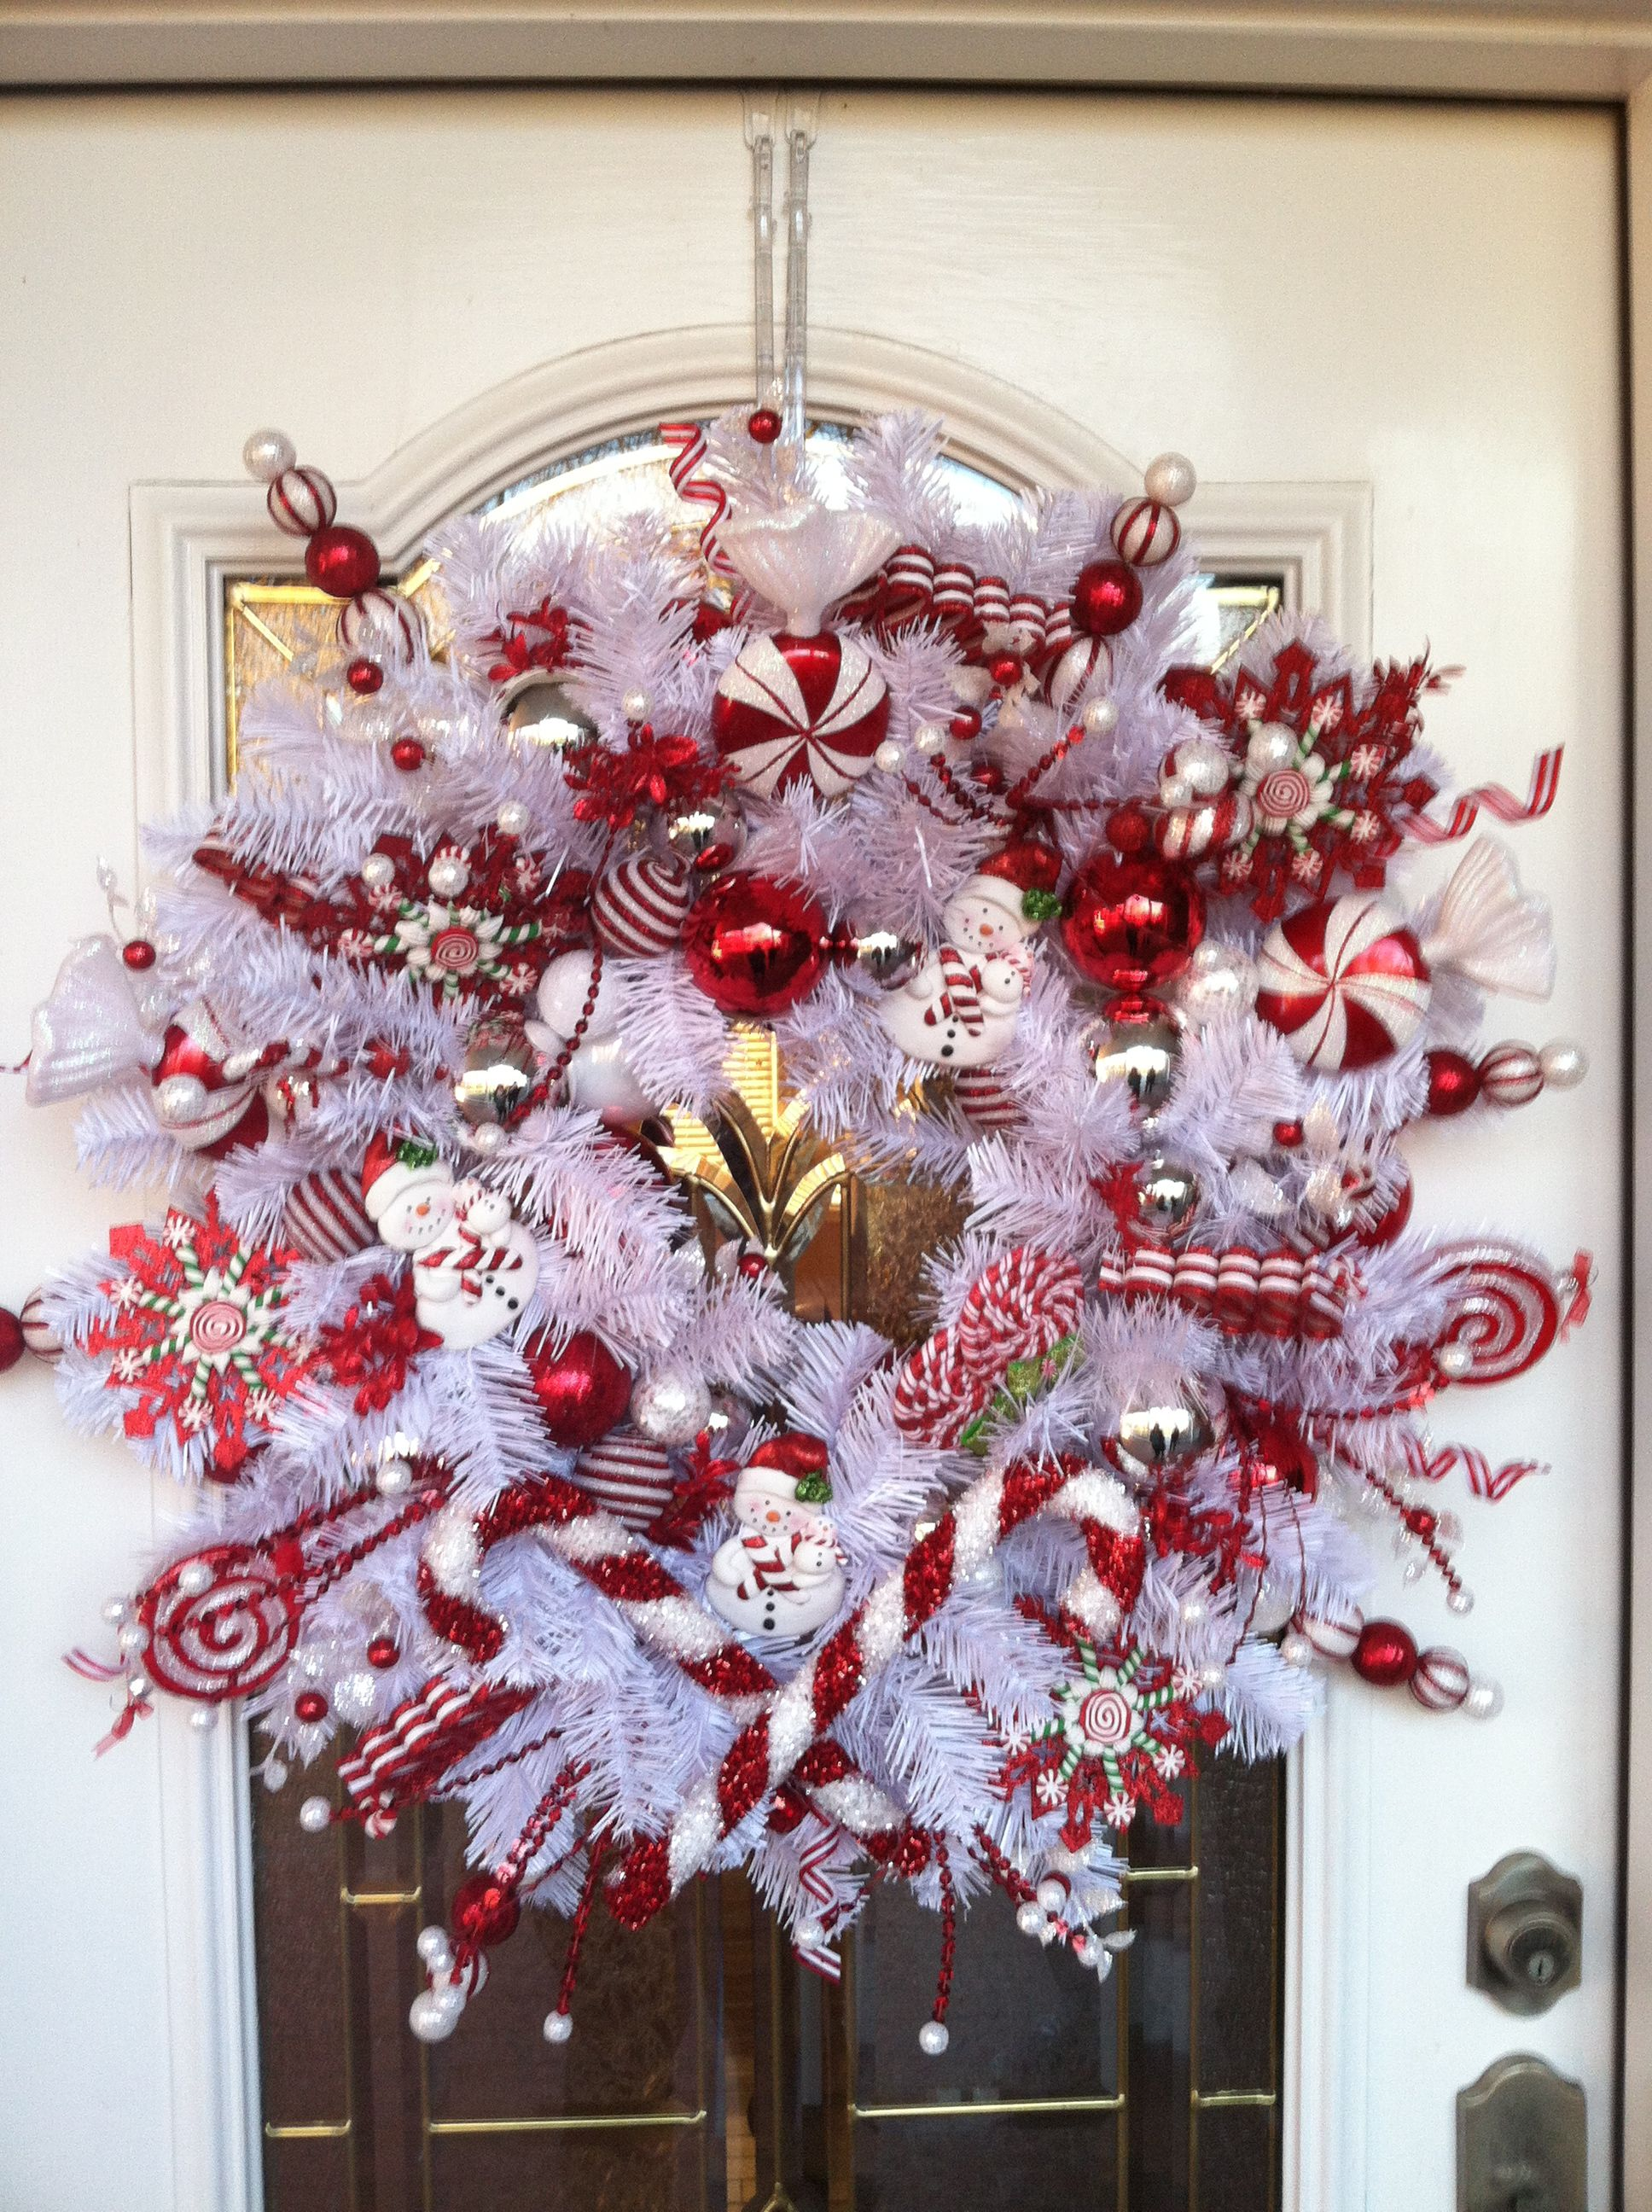 Our Beautiful Handmade Christmas Wreath For The Home